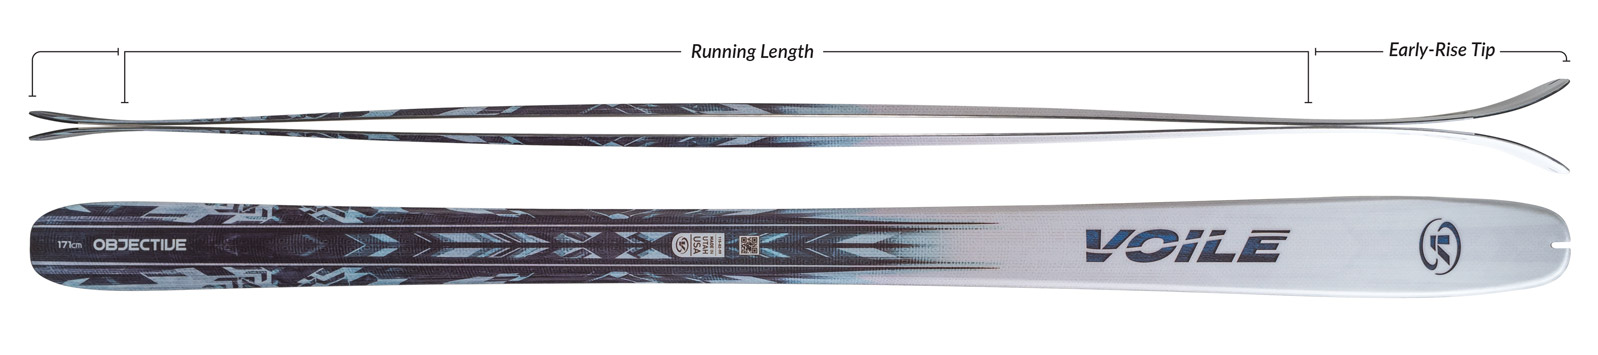 Voile Objective Skis Camber Profile